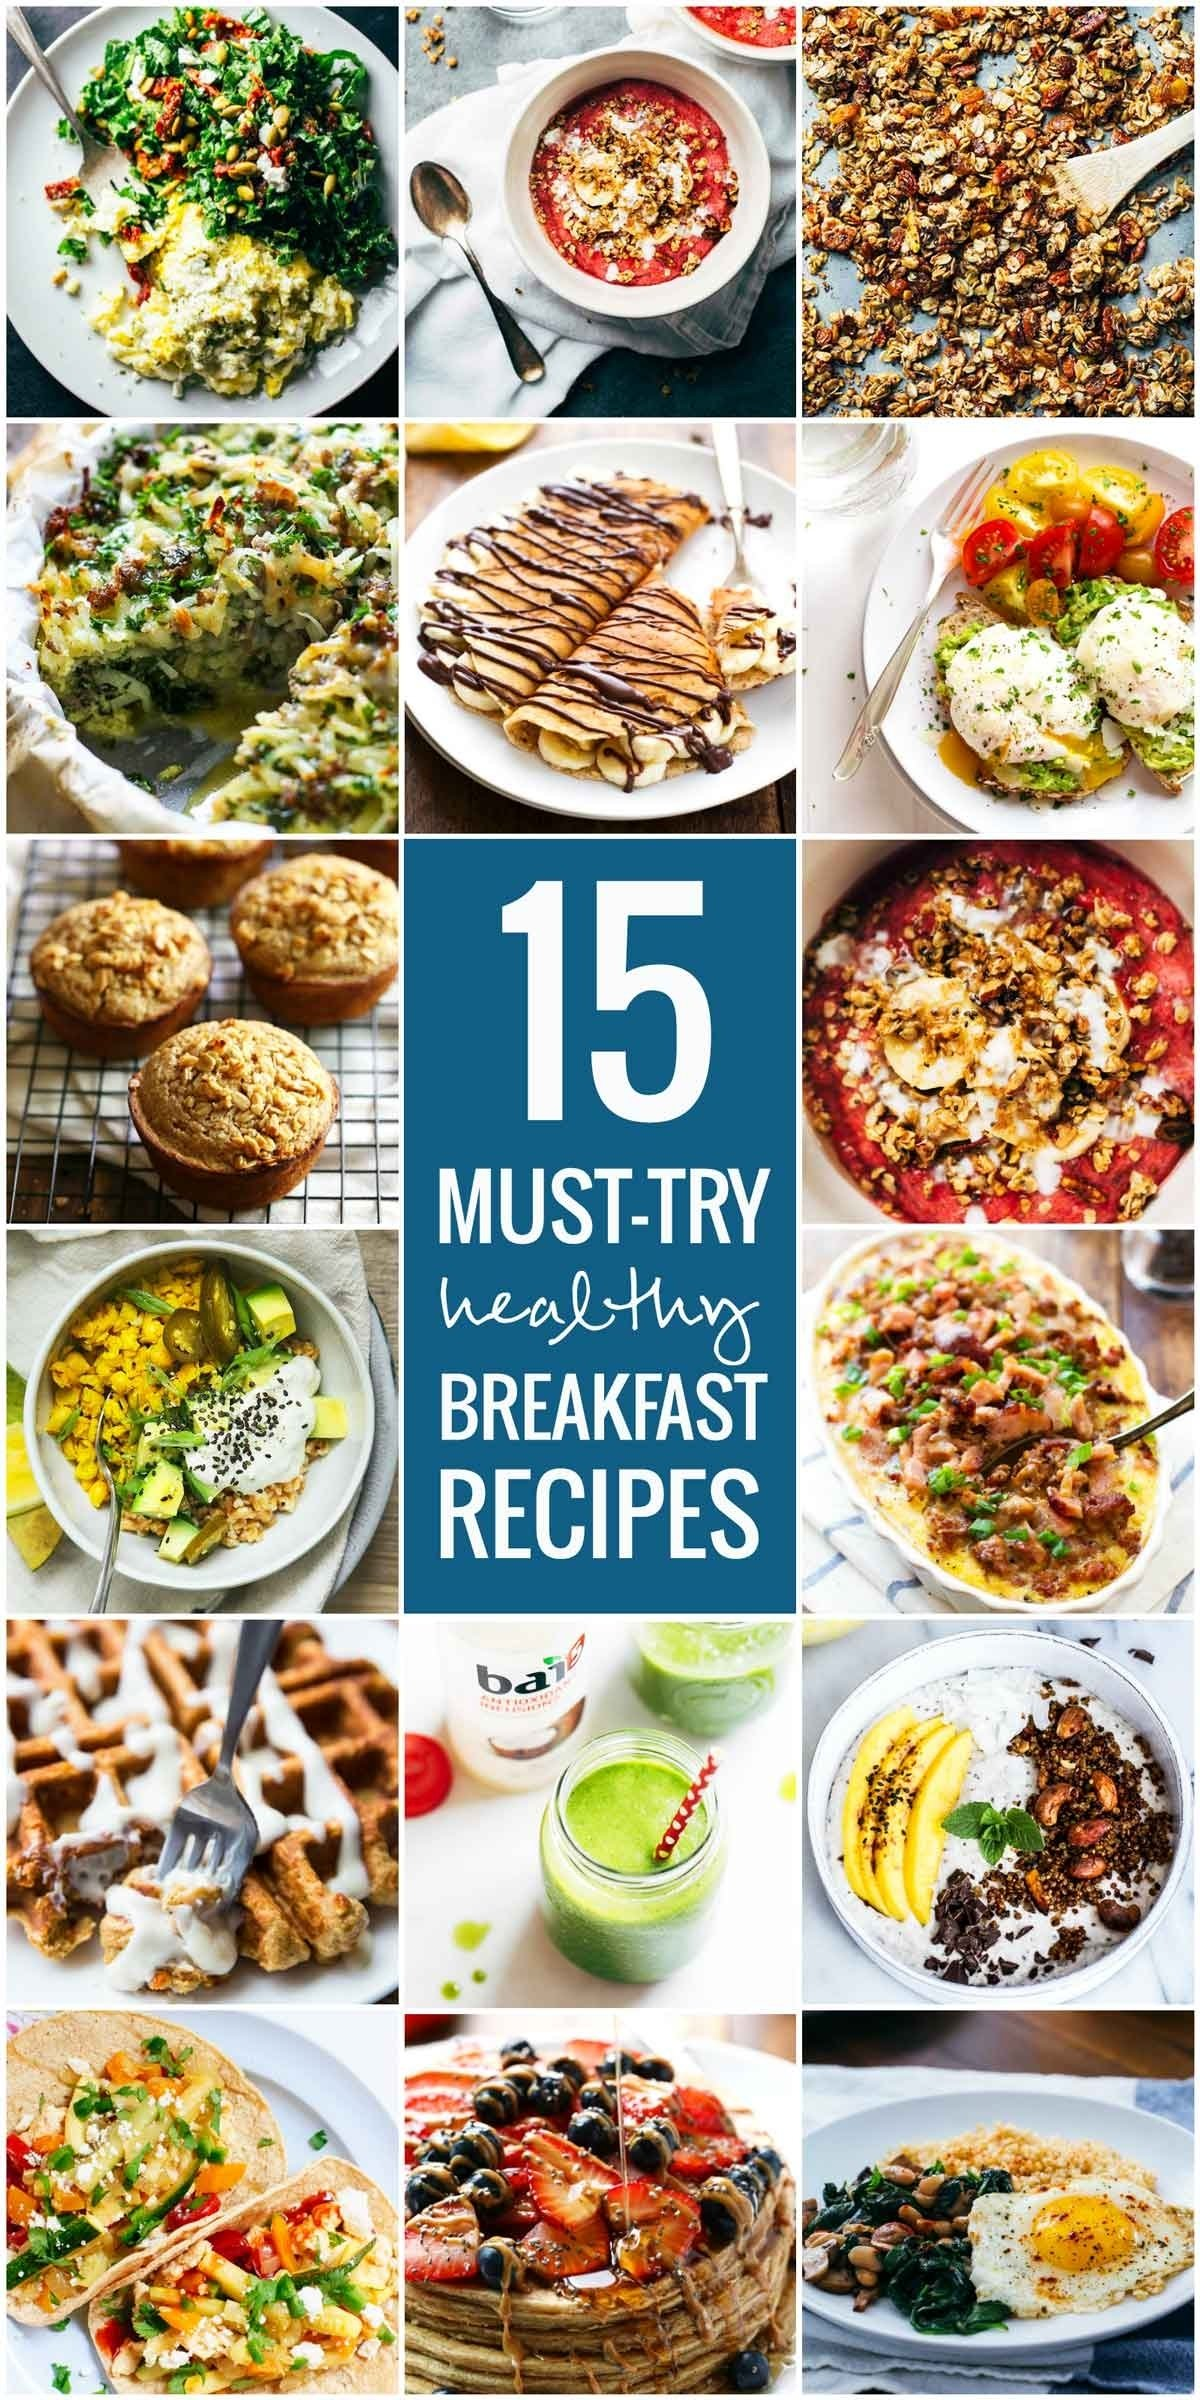 10 Attractive Healthy Breakfast And Lunch Ideas 15 must try healthy breakfast recipes pinch of yum 1 2020